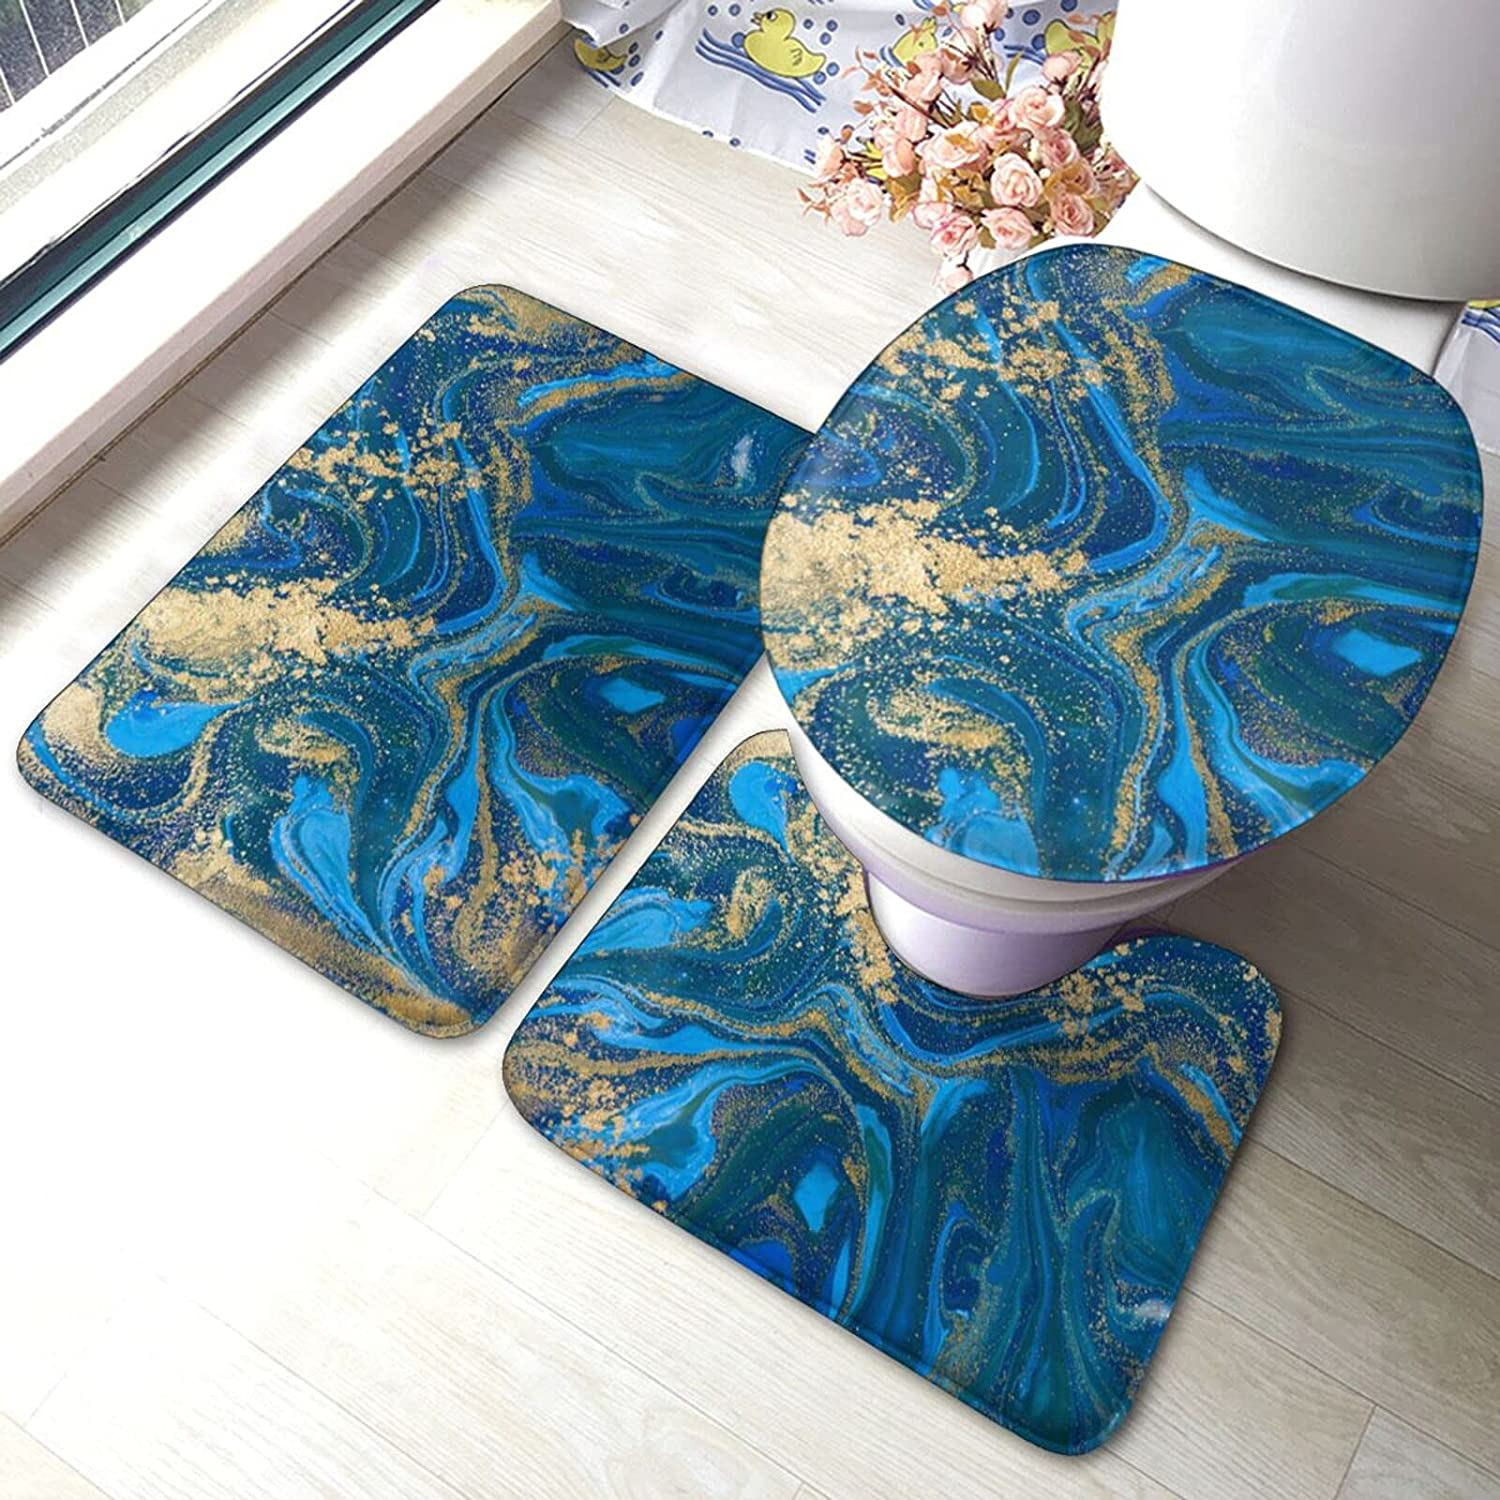 POMDJND Arlington Mall Abstract Blue and Gold Liquid Marble Max 82% OFF Set Bath Mat Stone